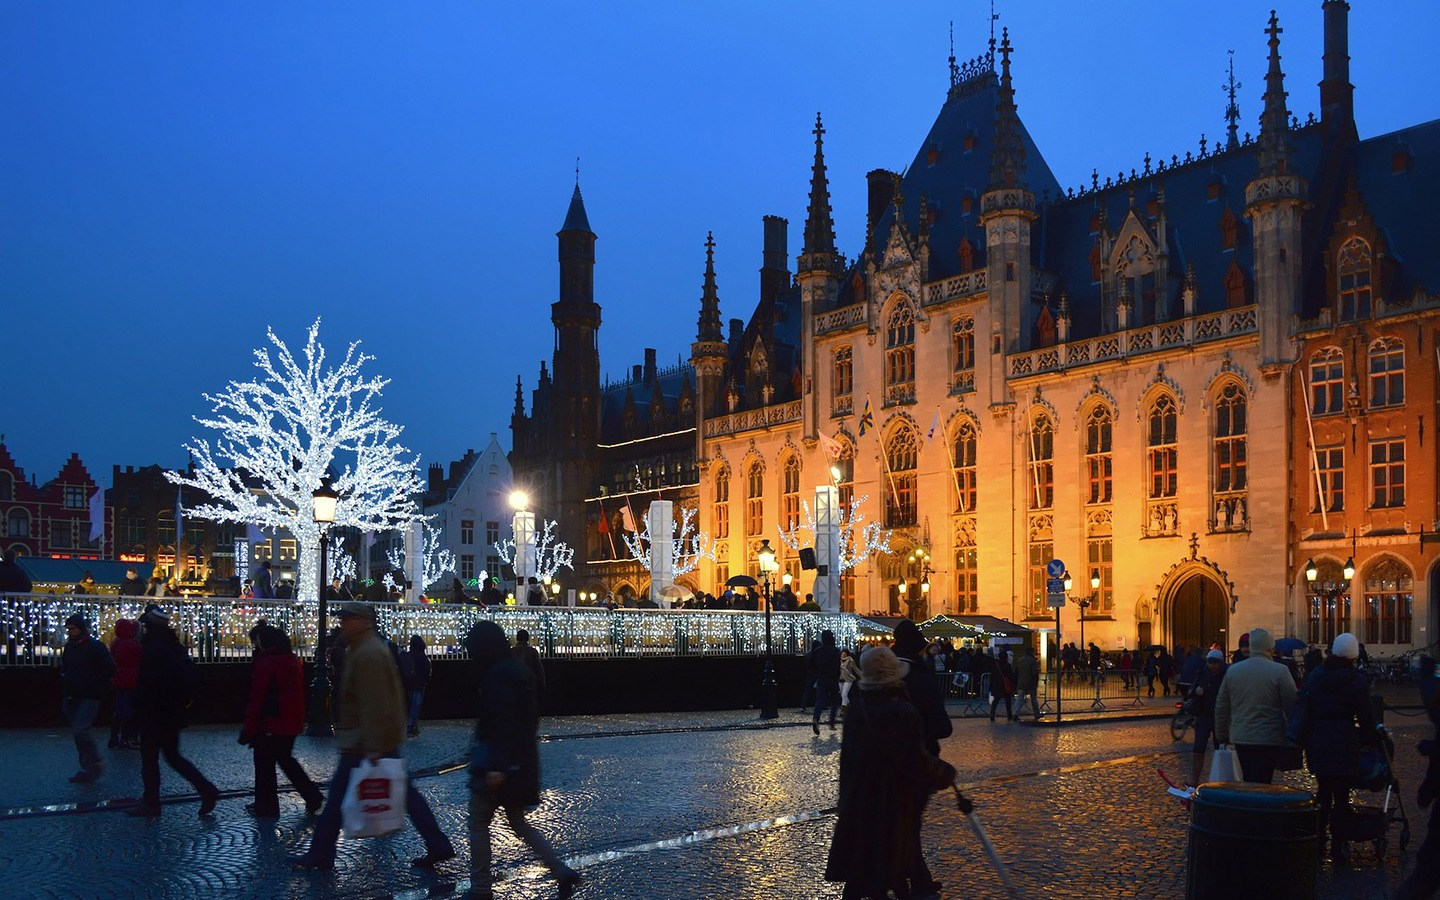 Winter weekend in Bruges